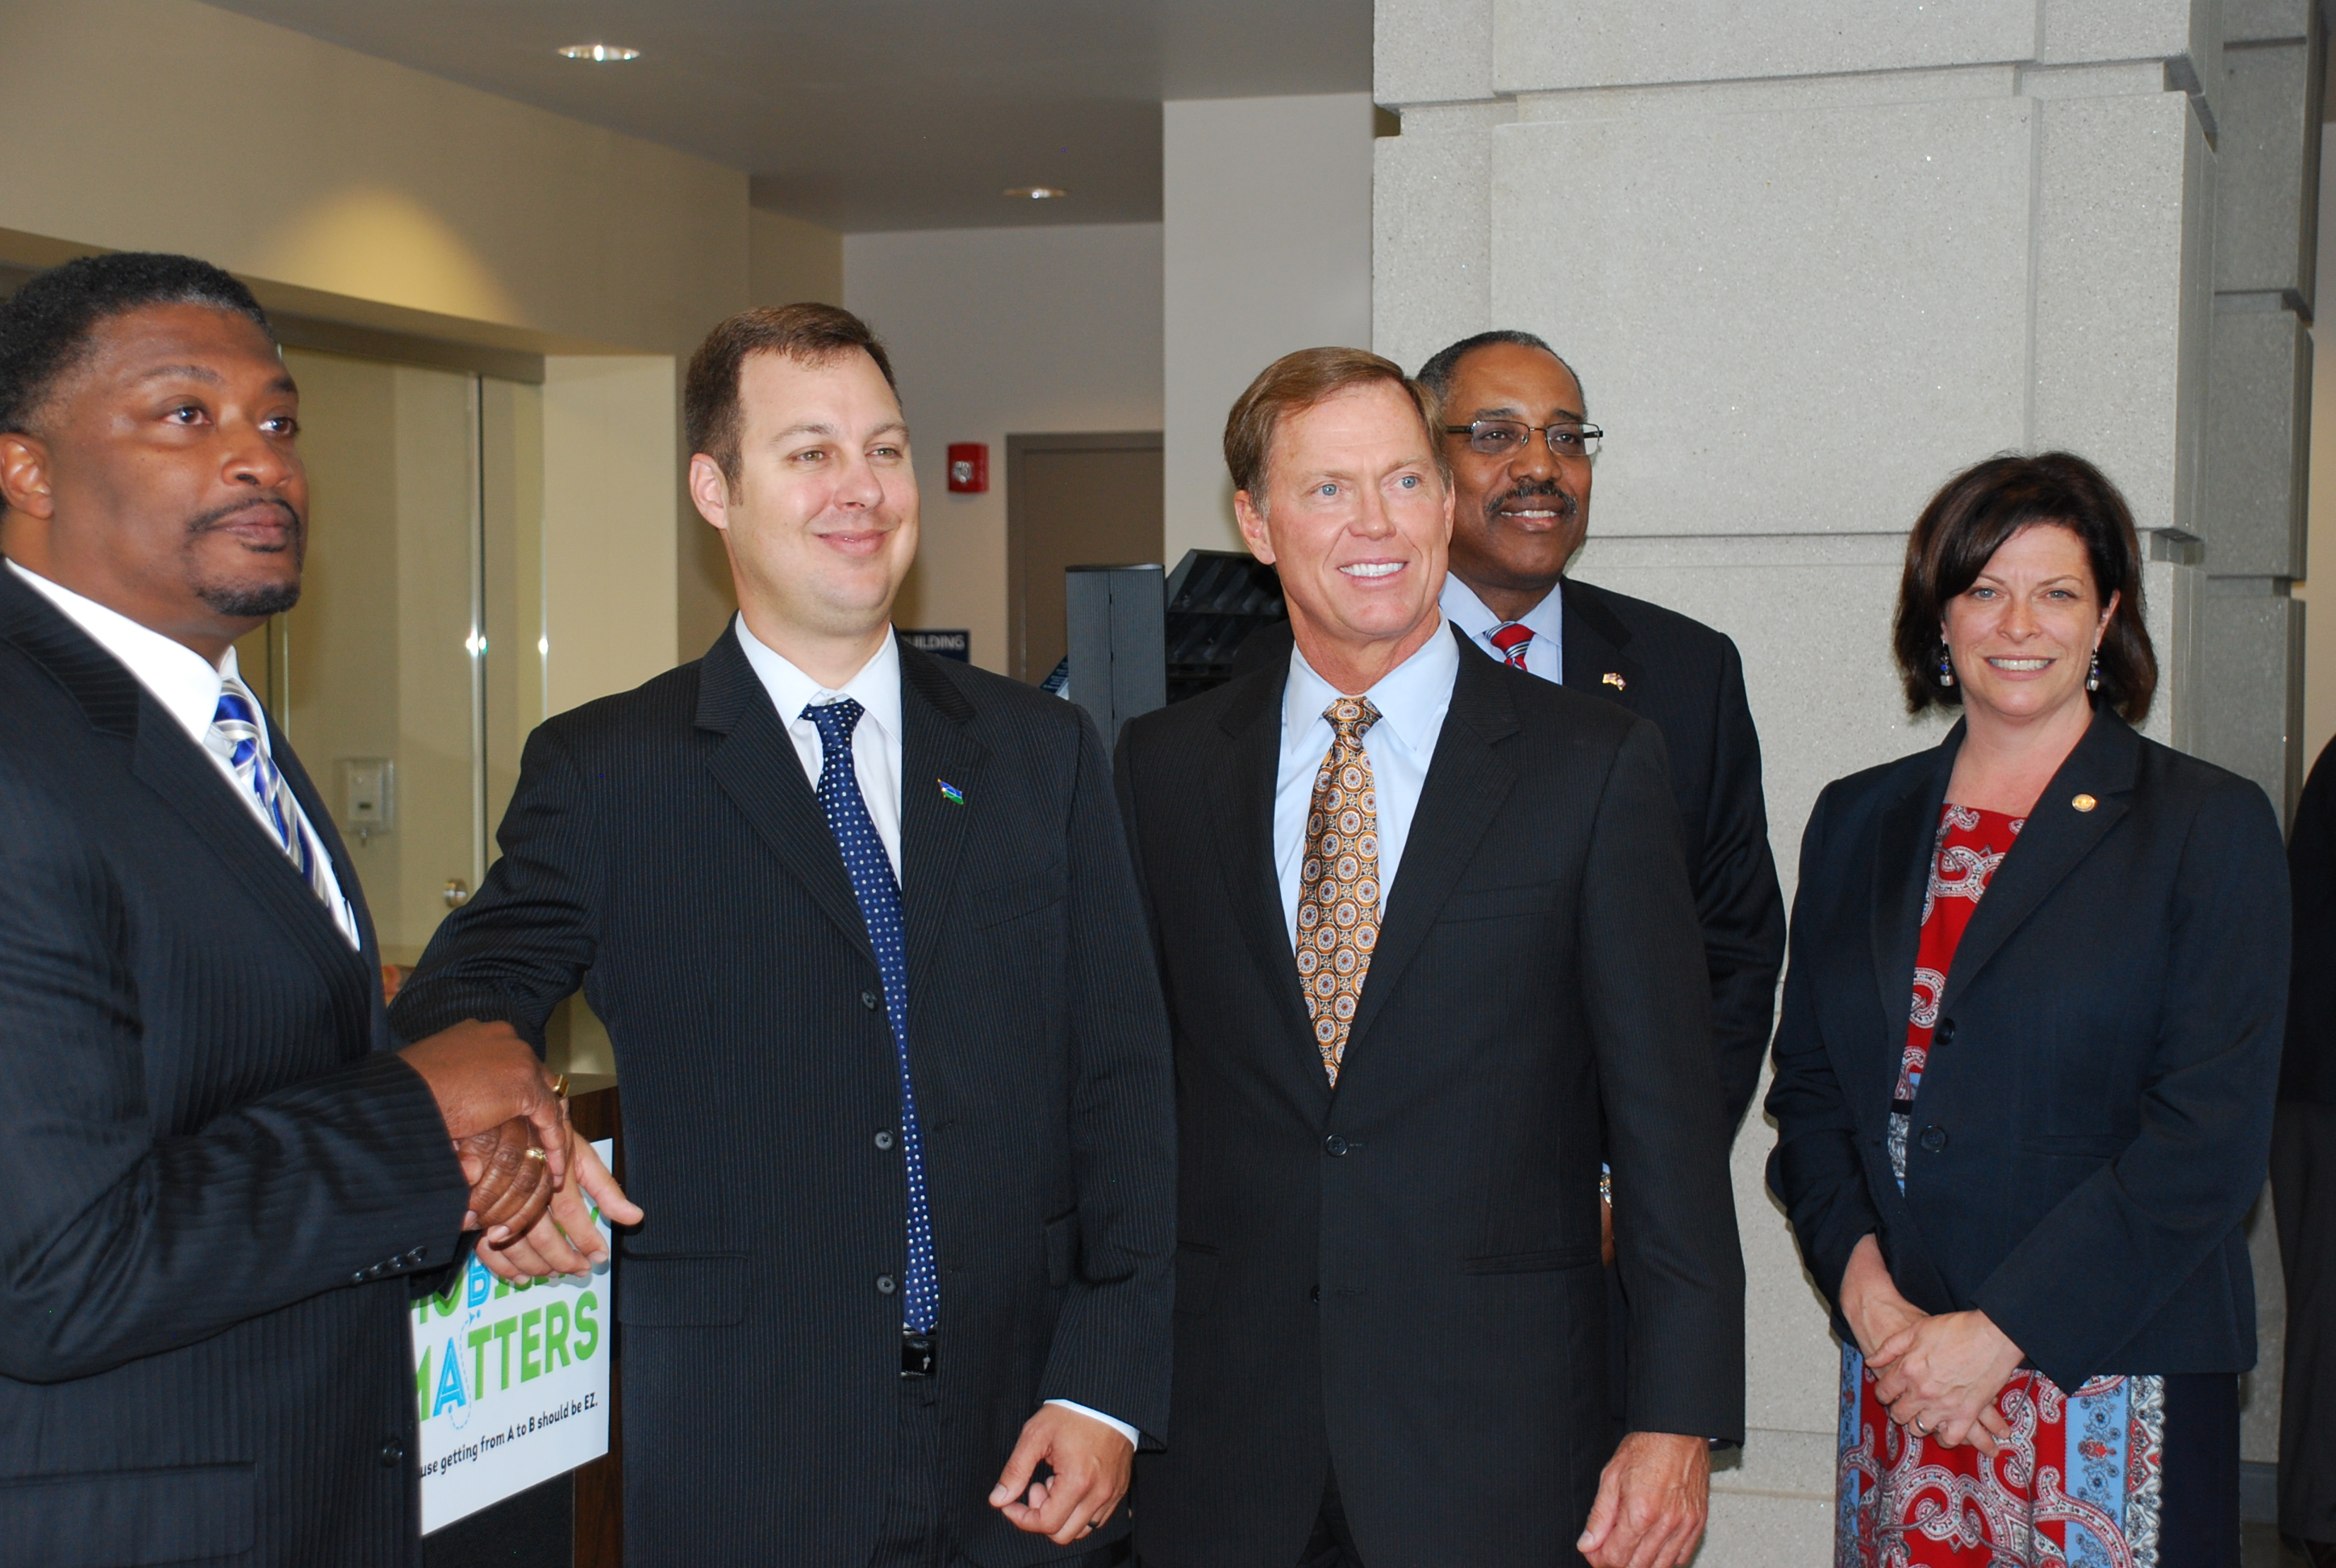 (from left) William Harrell; Robbyn Gayer; Bryan K. Stephens; Del. Matthew James; and Jennifer Mitchell, Director of the Virginia Department of Rail and Public Transportation.  Photo courtesy of Reynolds Huthchins/Inside Business